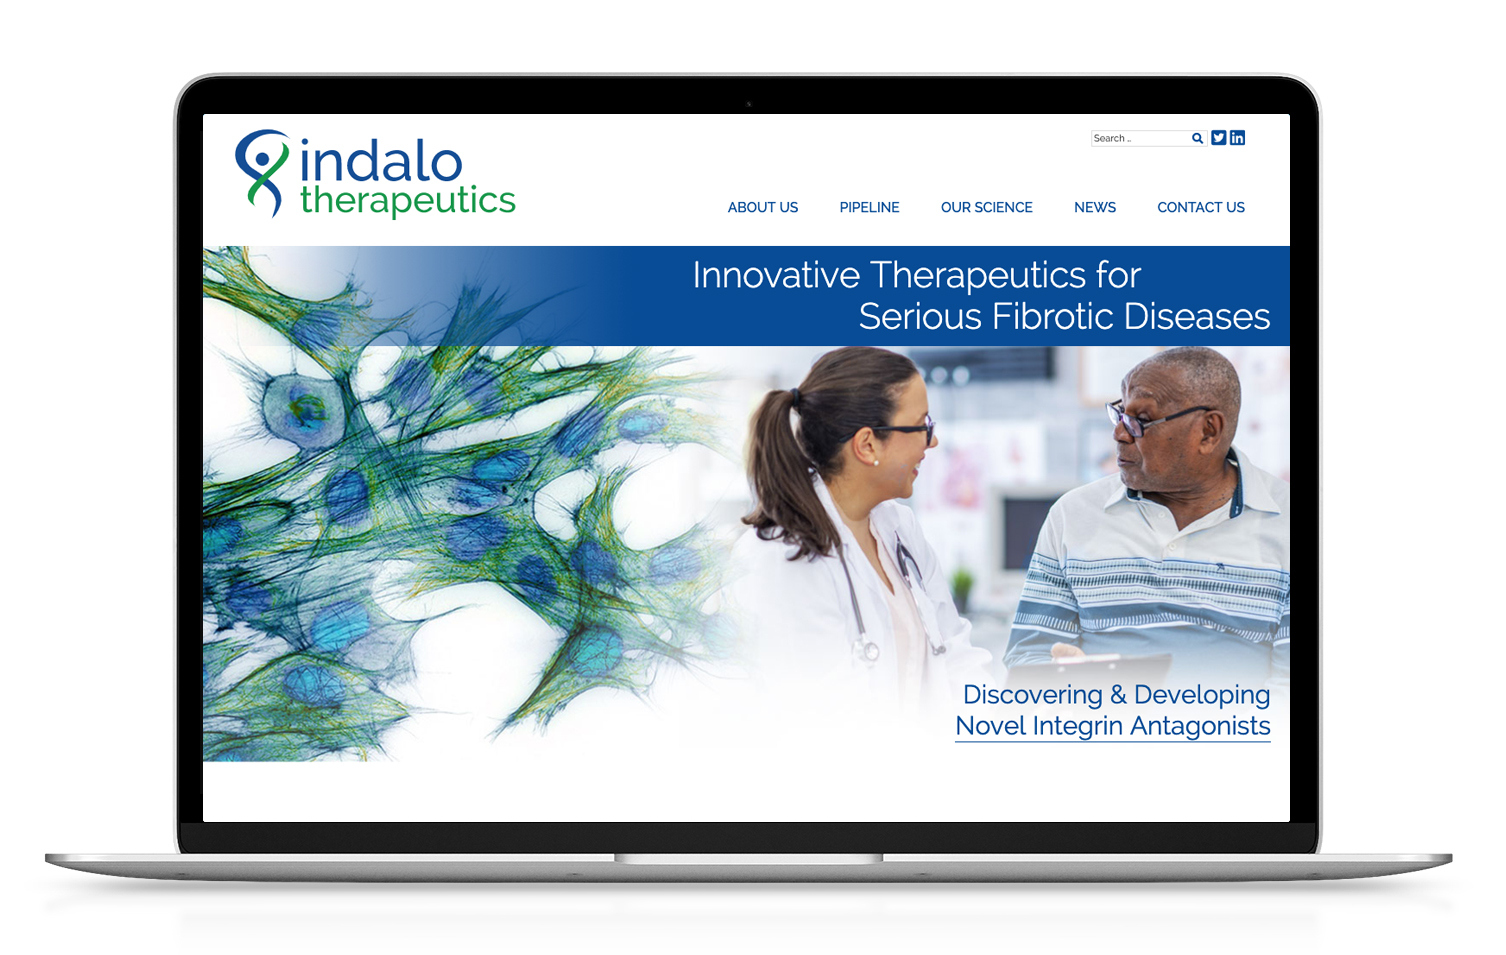 Indalo Therapeutics